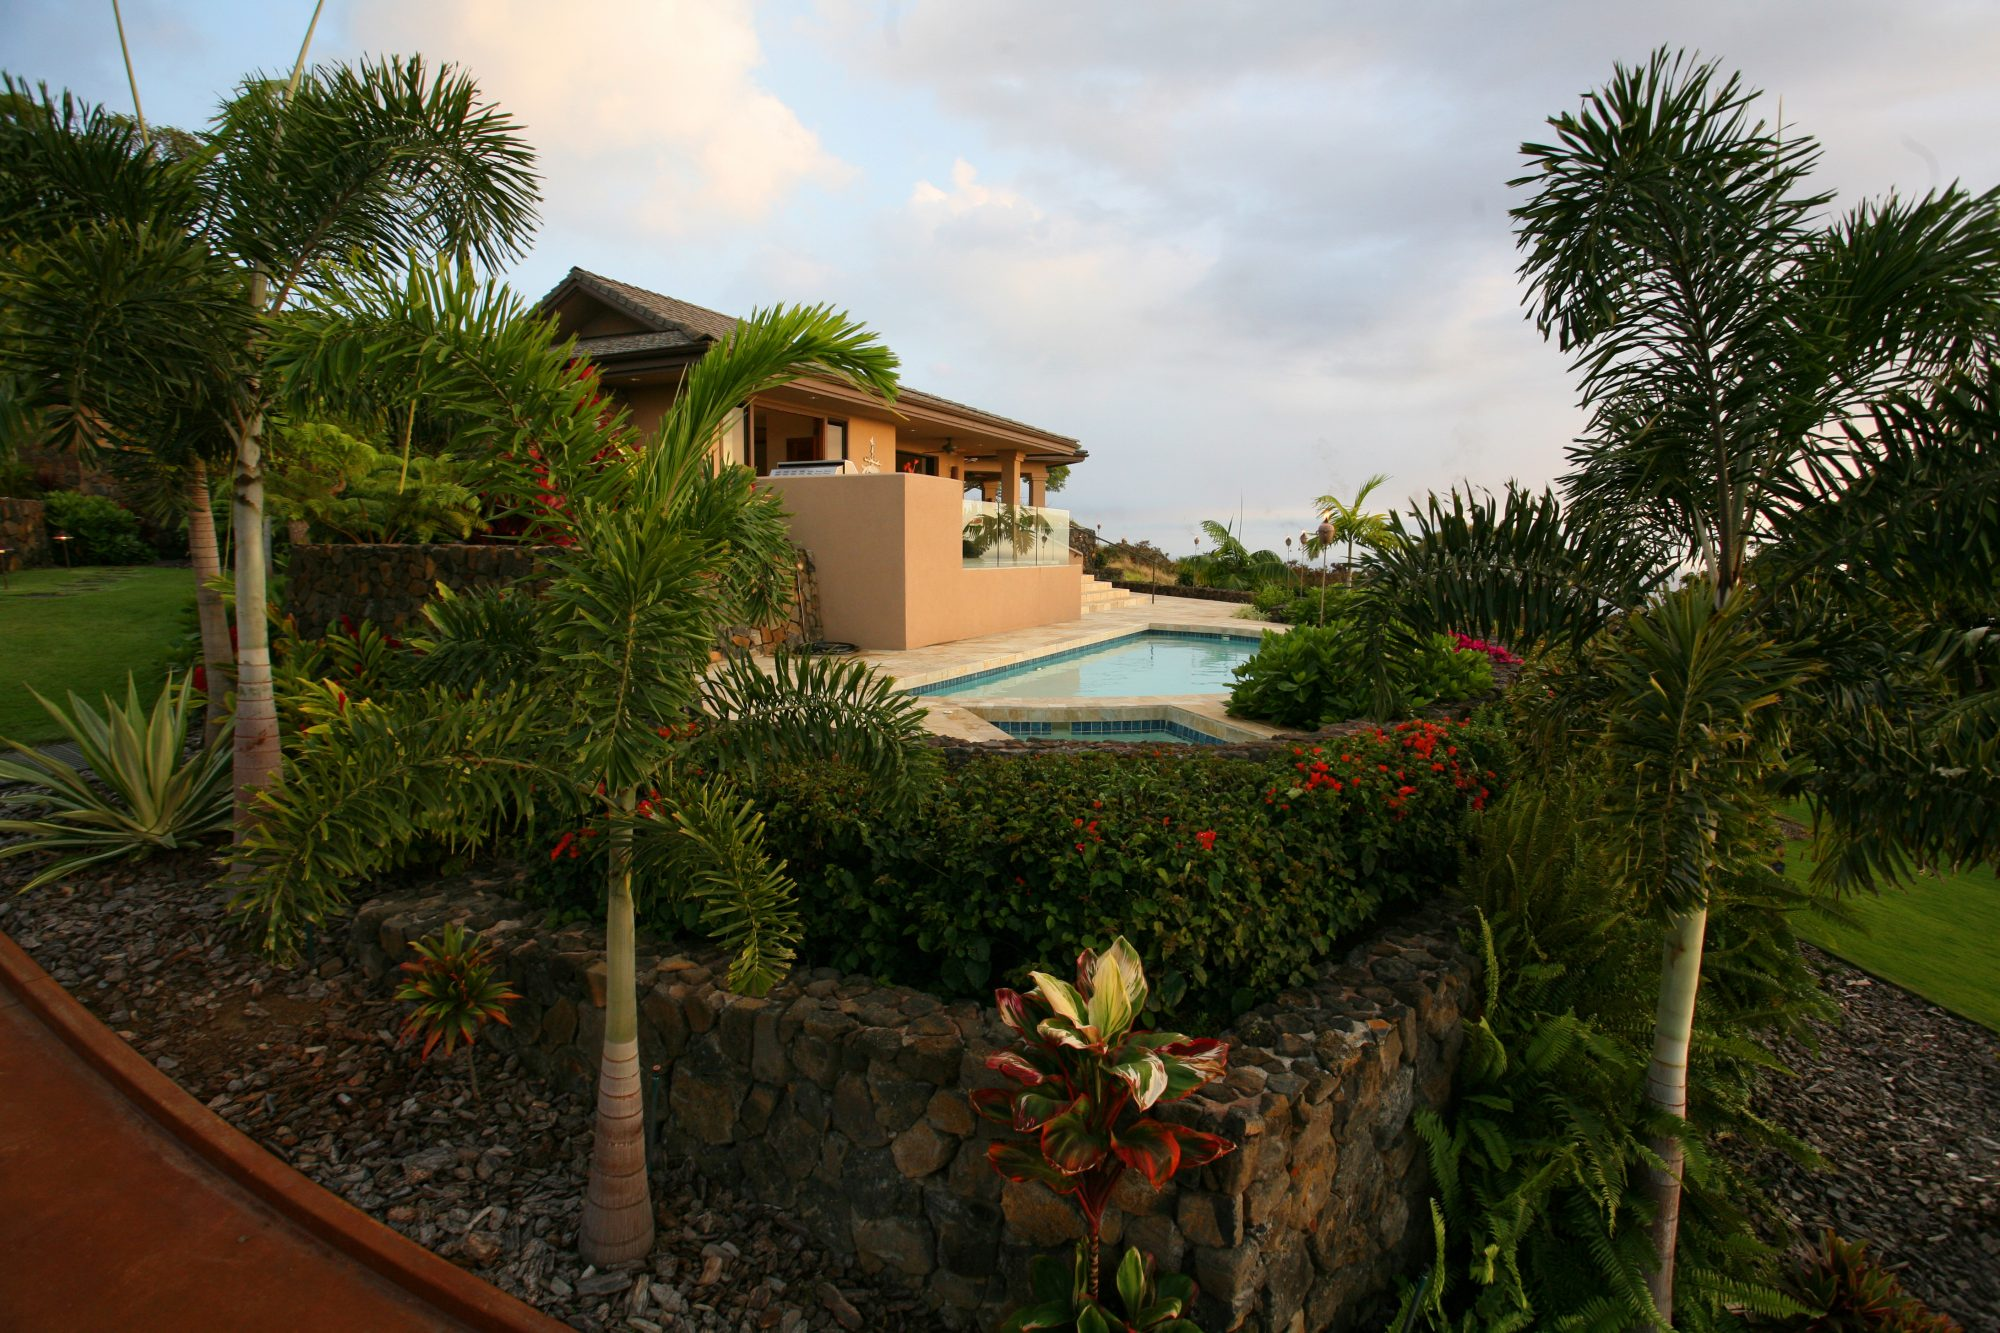 *The Auamo Compound, Elevation and Pool Through the Palms